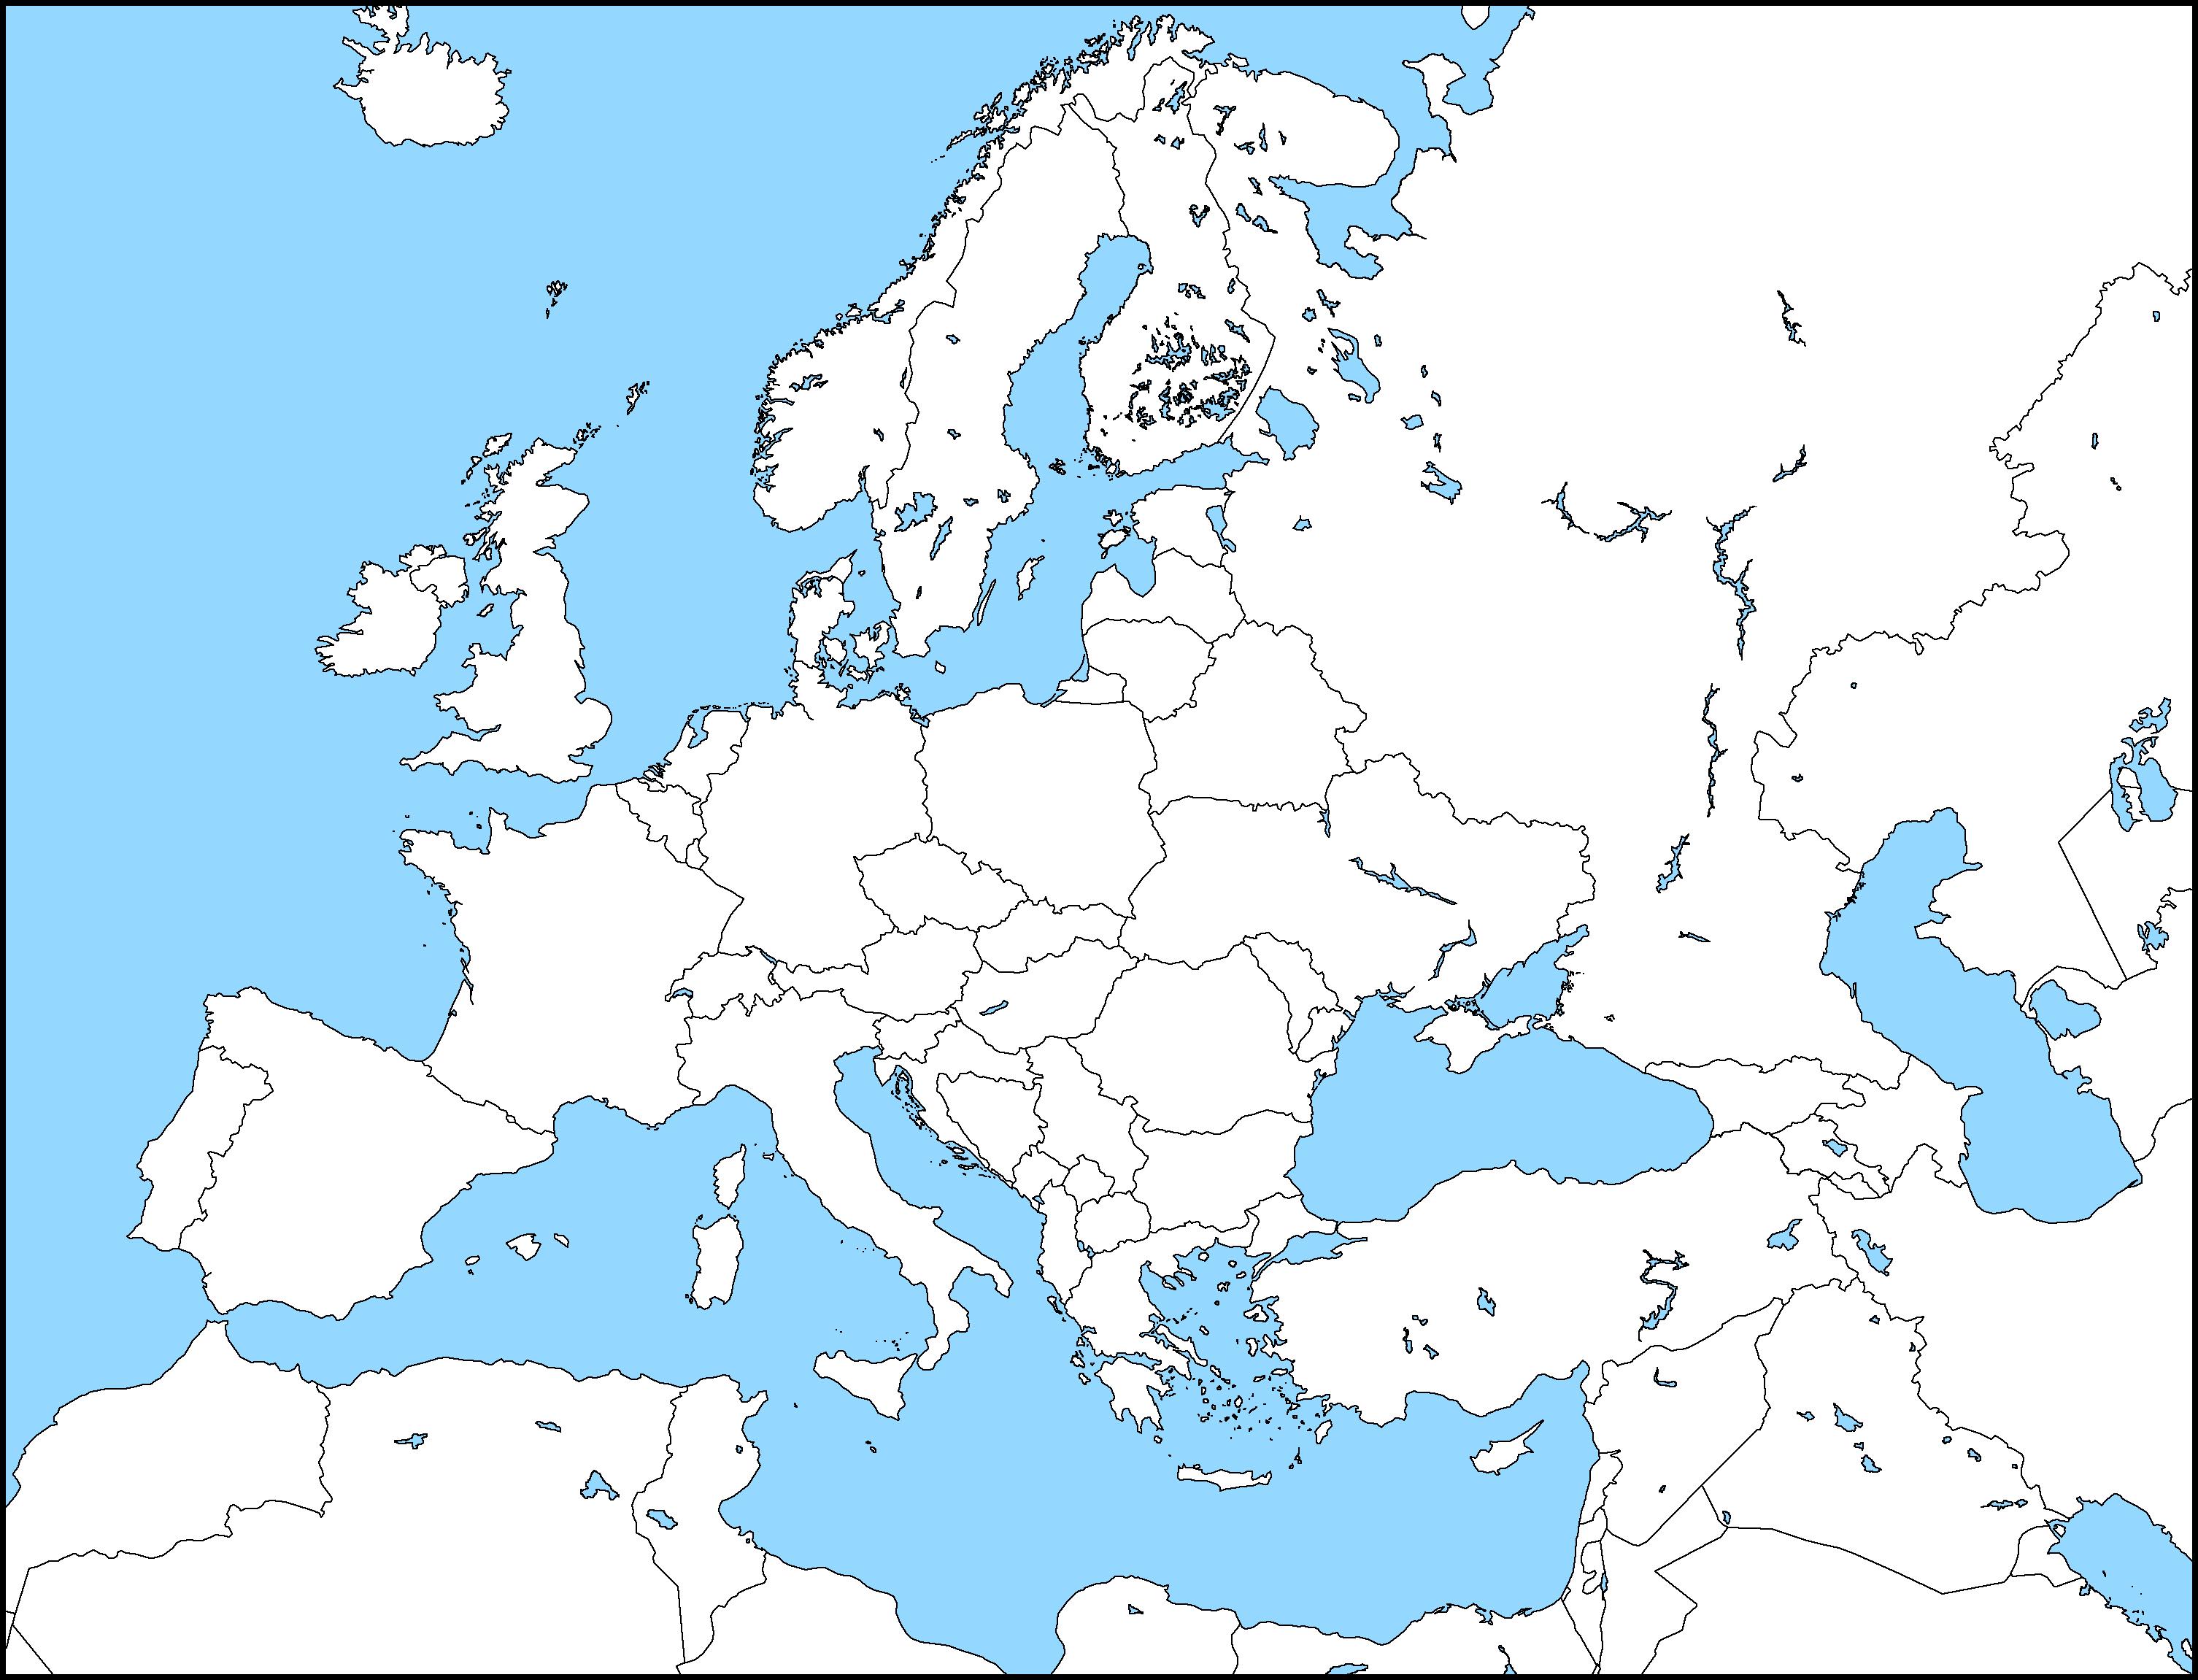 map of europe for mapping Mapping   Modern Europe [HD] by HarryM29 on DeviantArt